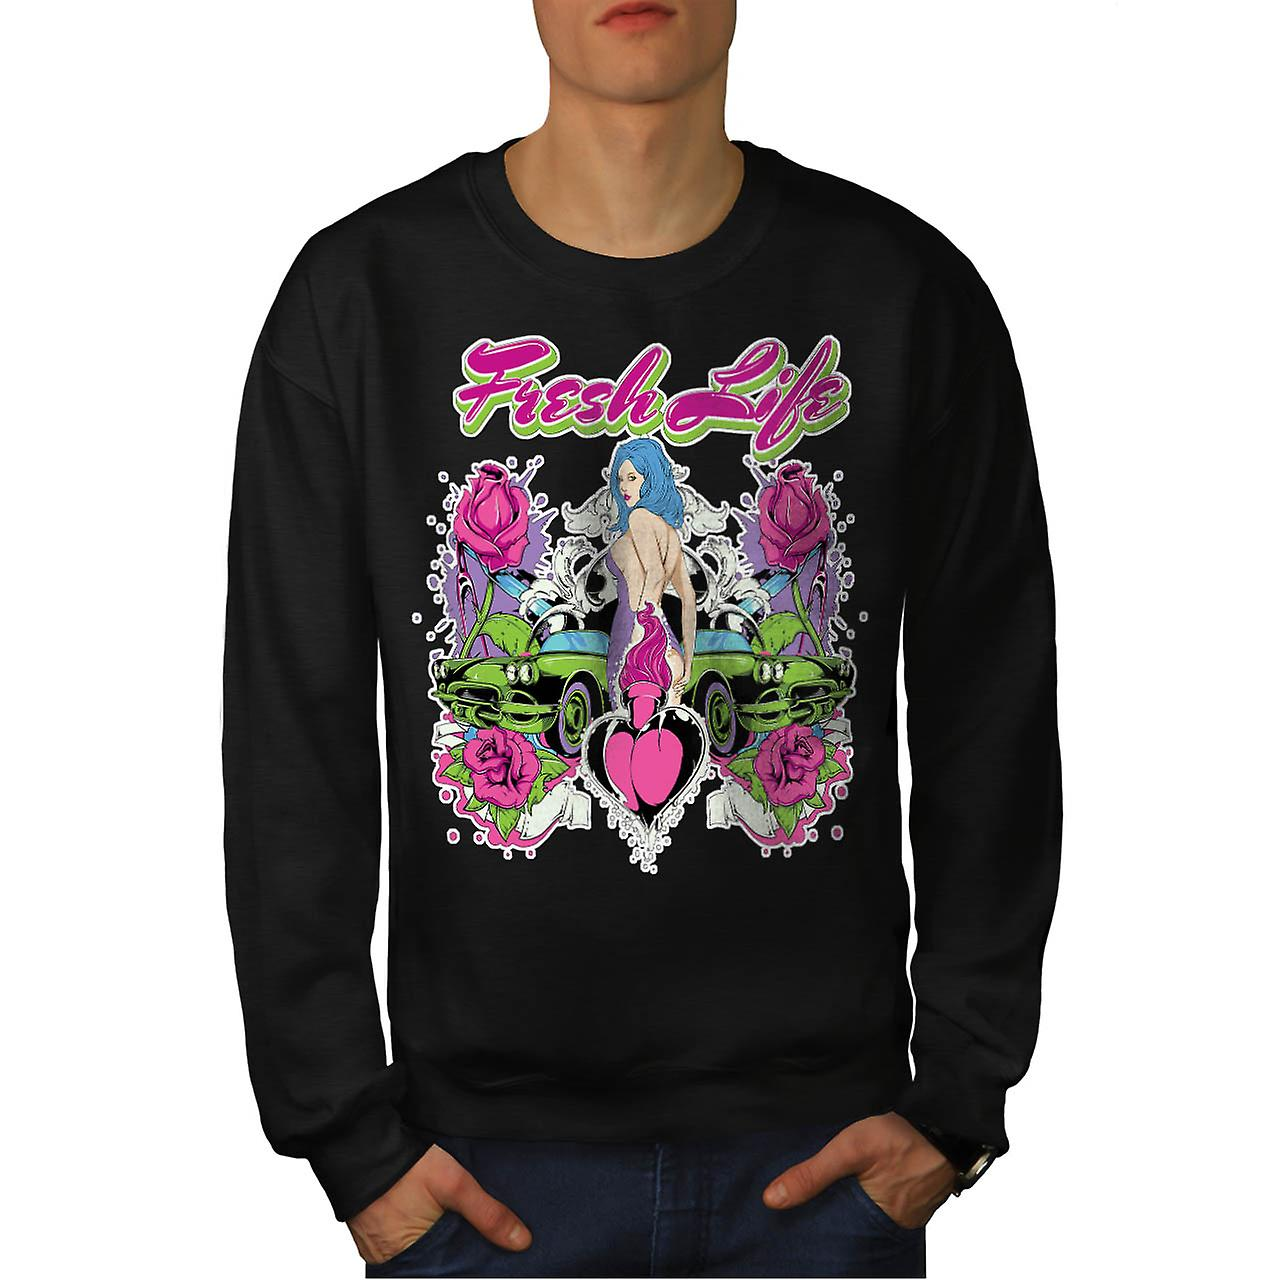 Fresh Life Vintage Car Men Black Sweatshirt | Wellcoda